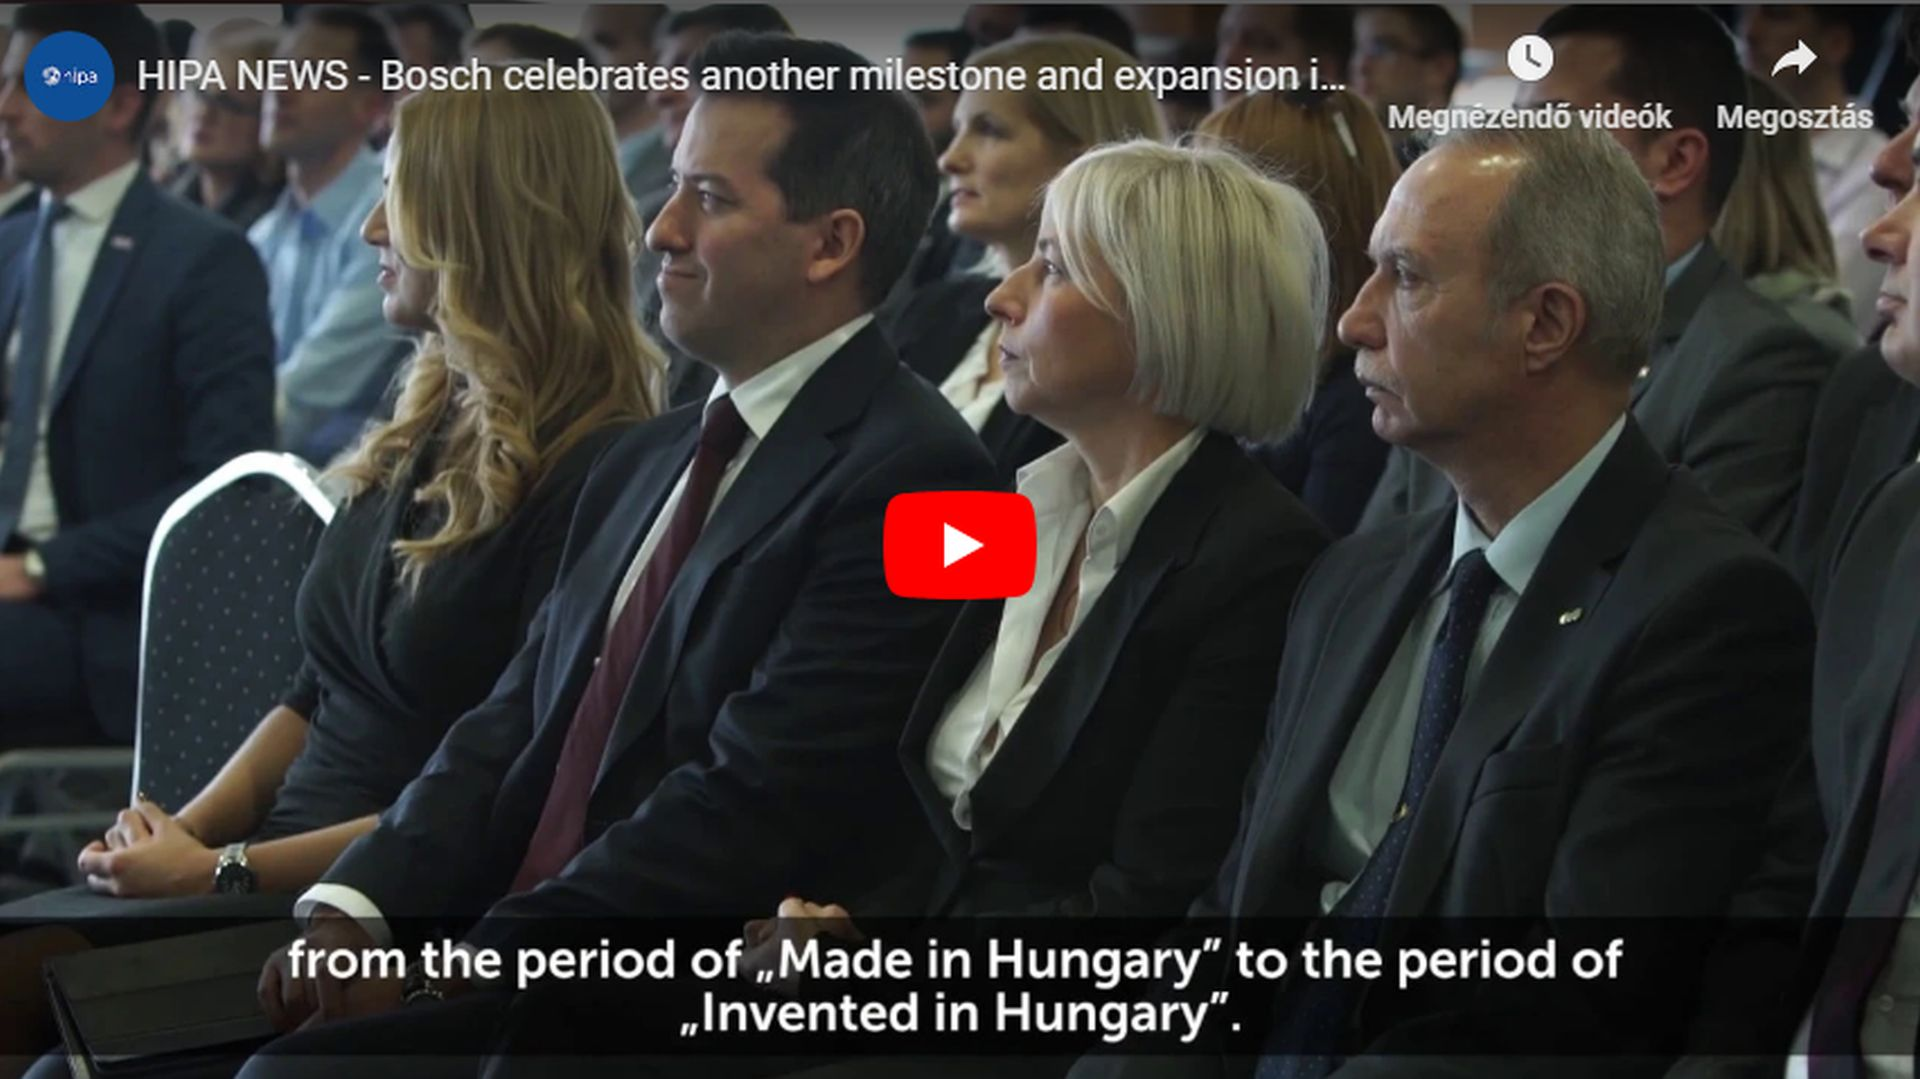 Another milestone and expansion in the automotive unit of Bosch in Miskolc - VIDEO REPORT